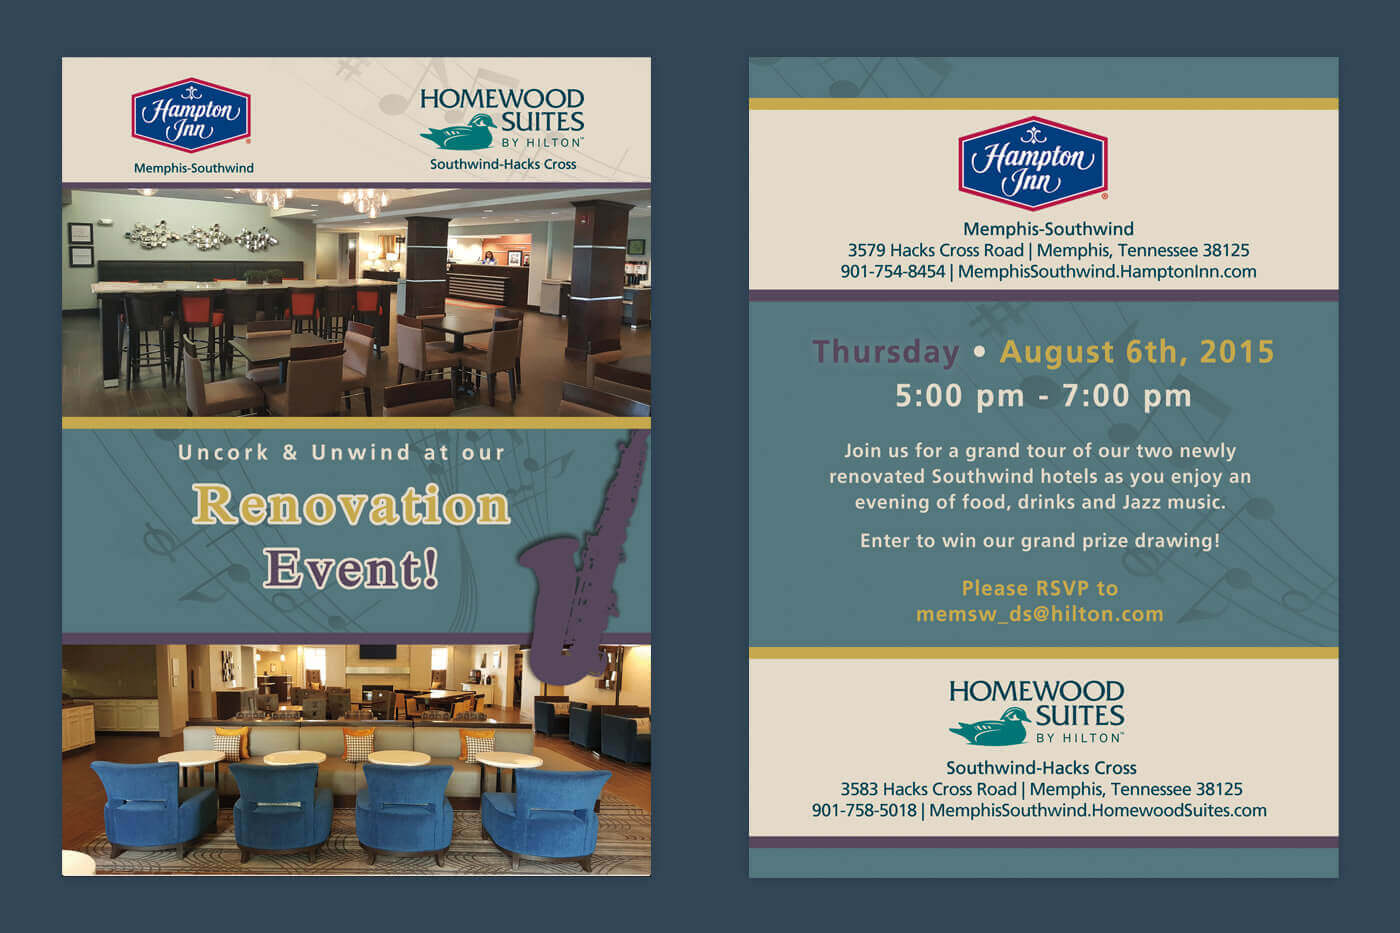 Print Collateral - Hampton Inn Memphis-Southwind Invite | Homewood Suites Southwind-Hacks Cross